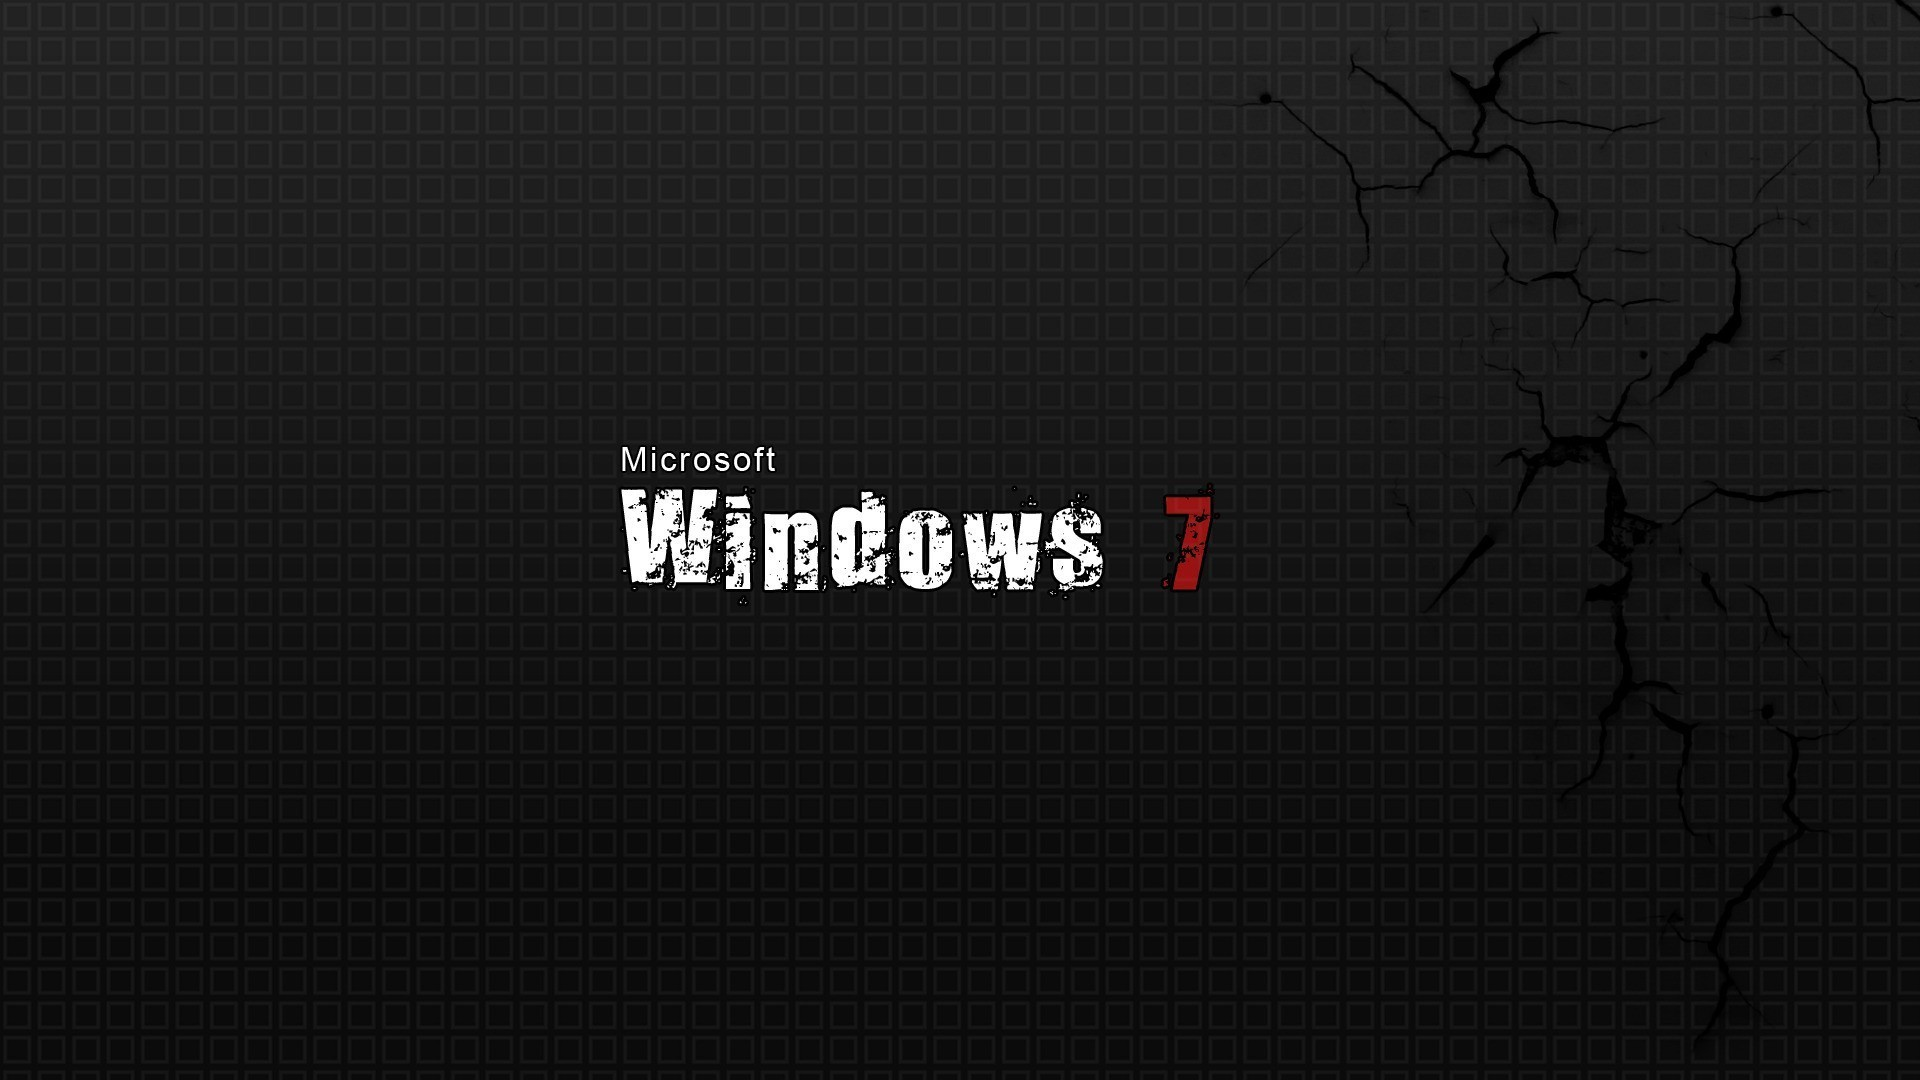 windows 7 gray text wallpaper | allwallpaper.in #6543 | pc | en